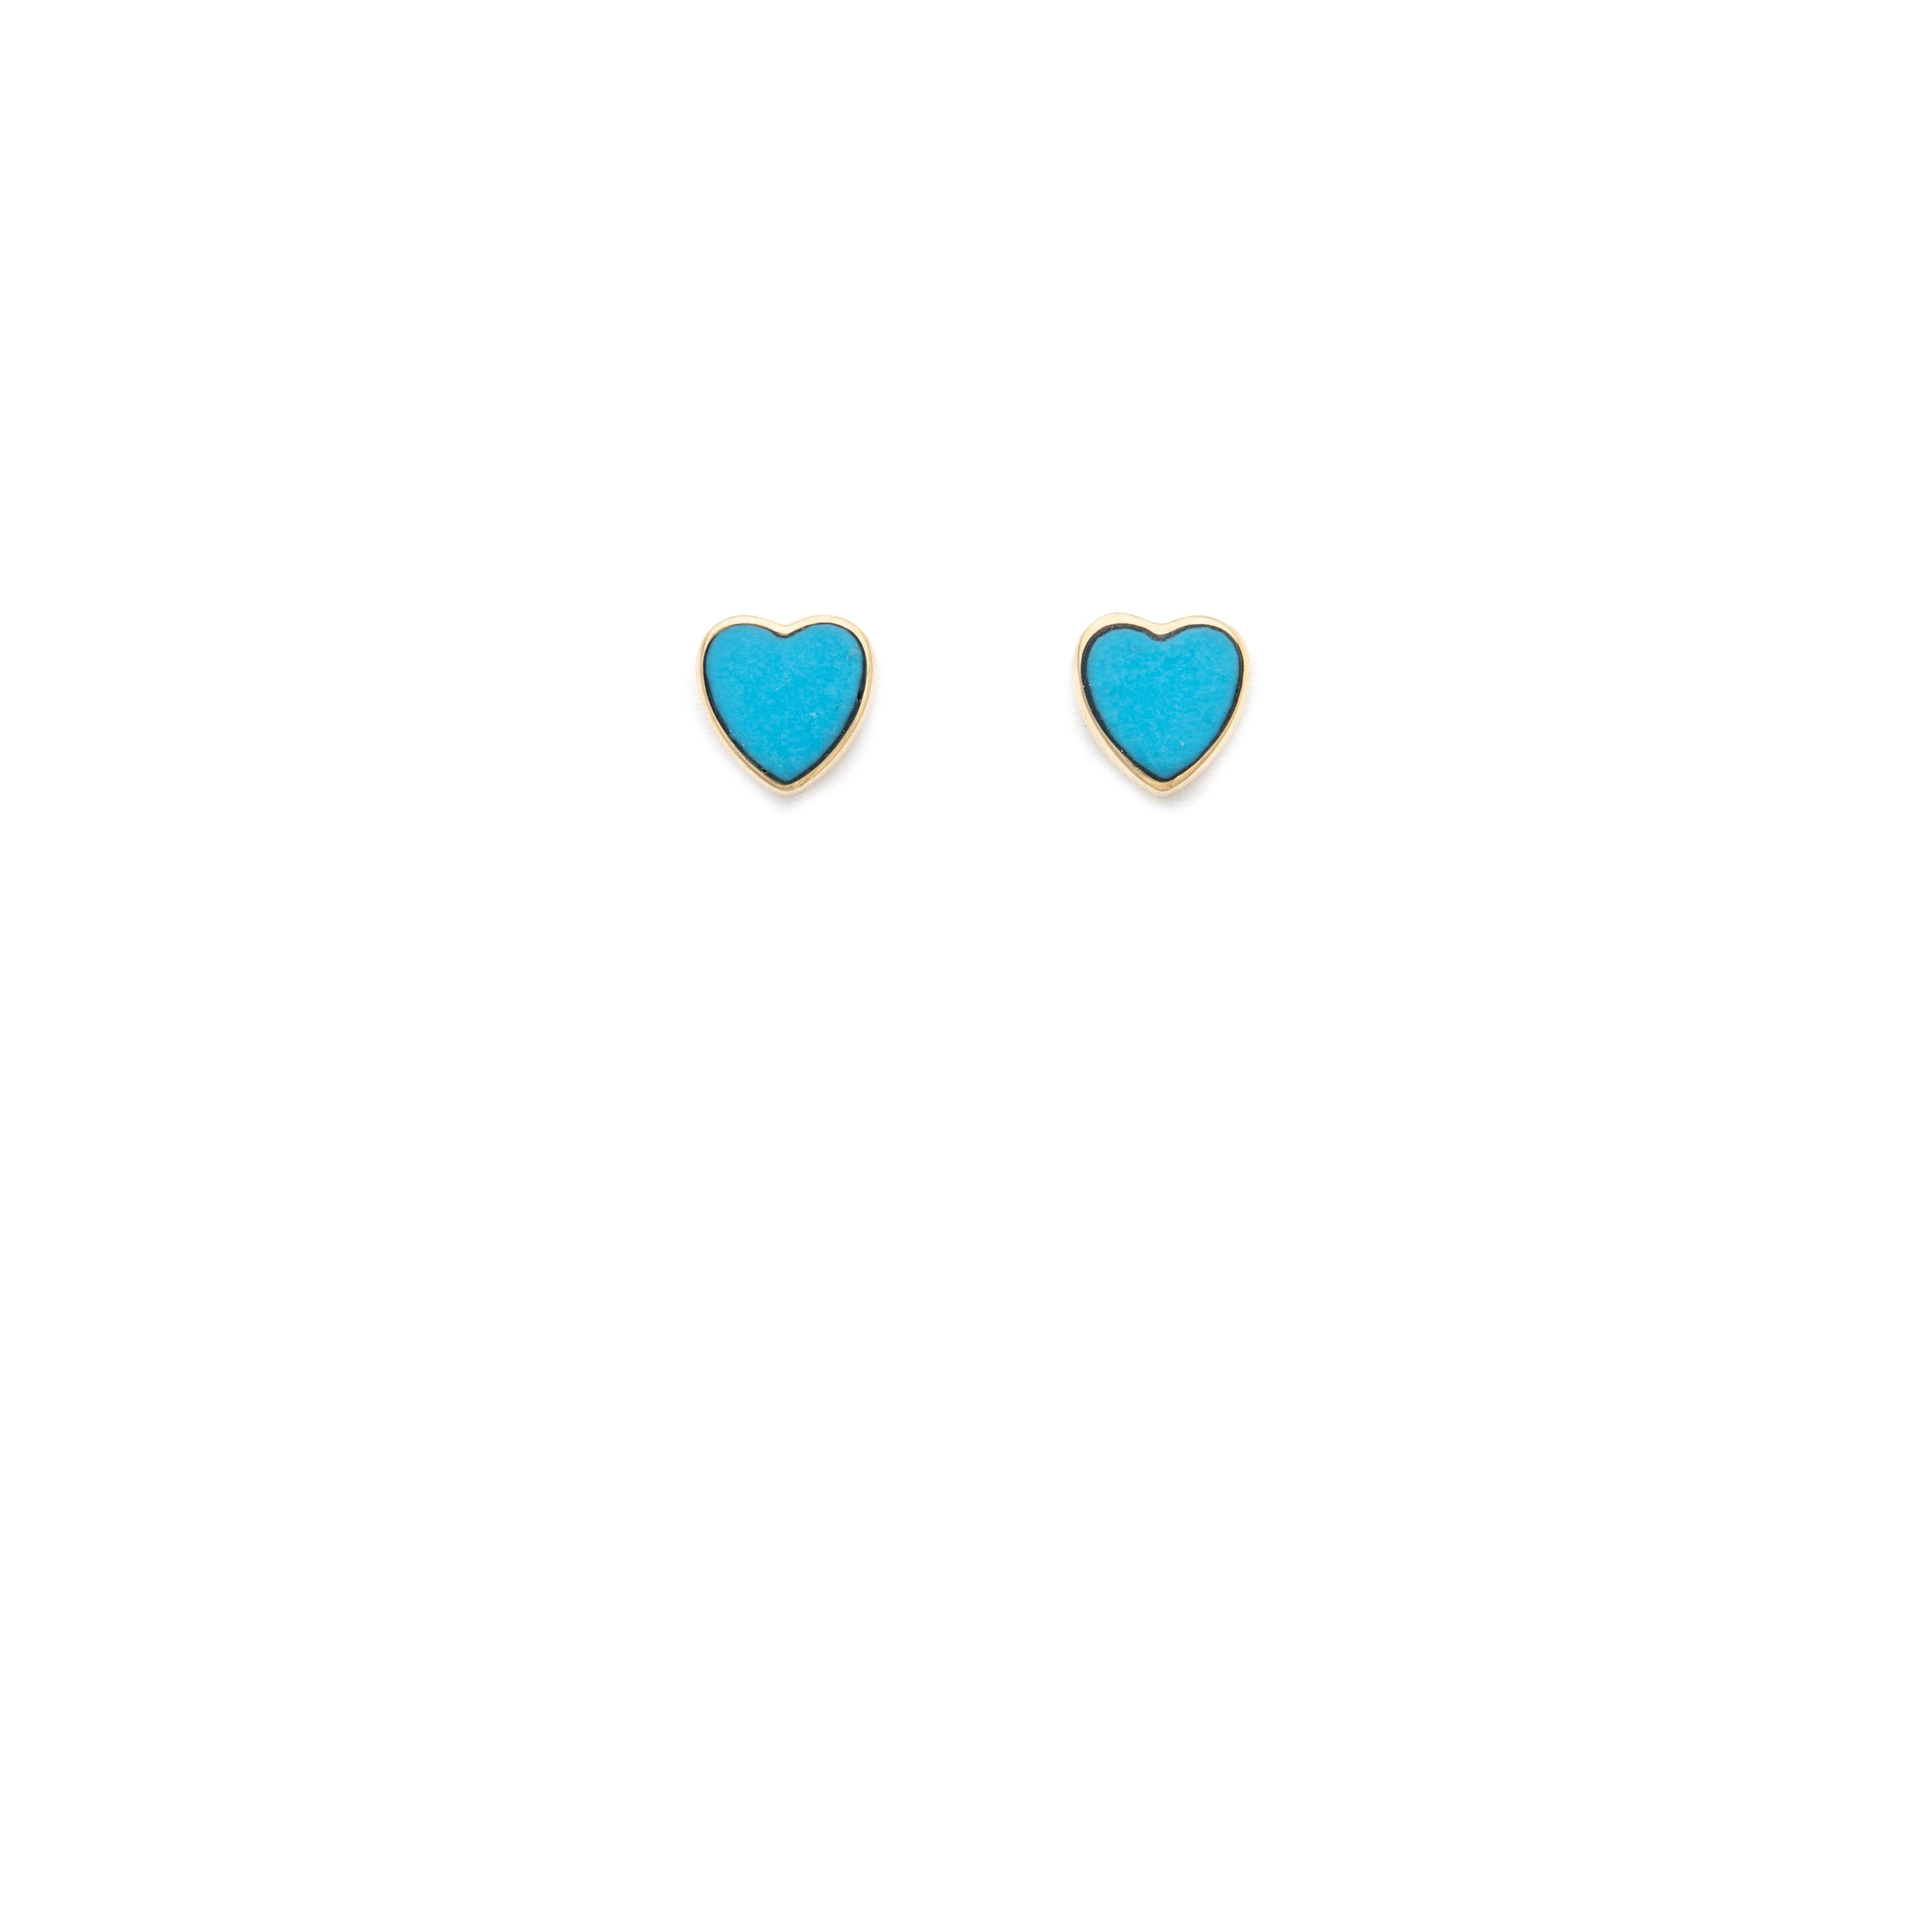 Turquoise Heart Stud - 10k Solid Gold